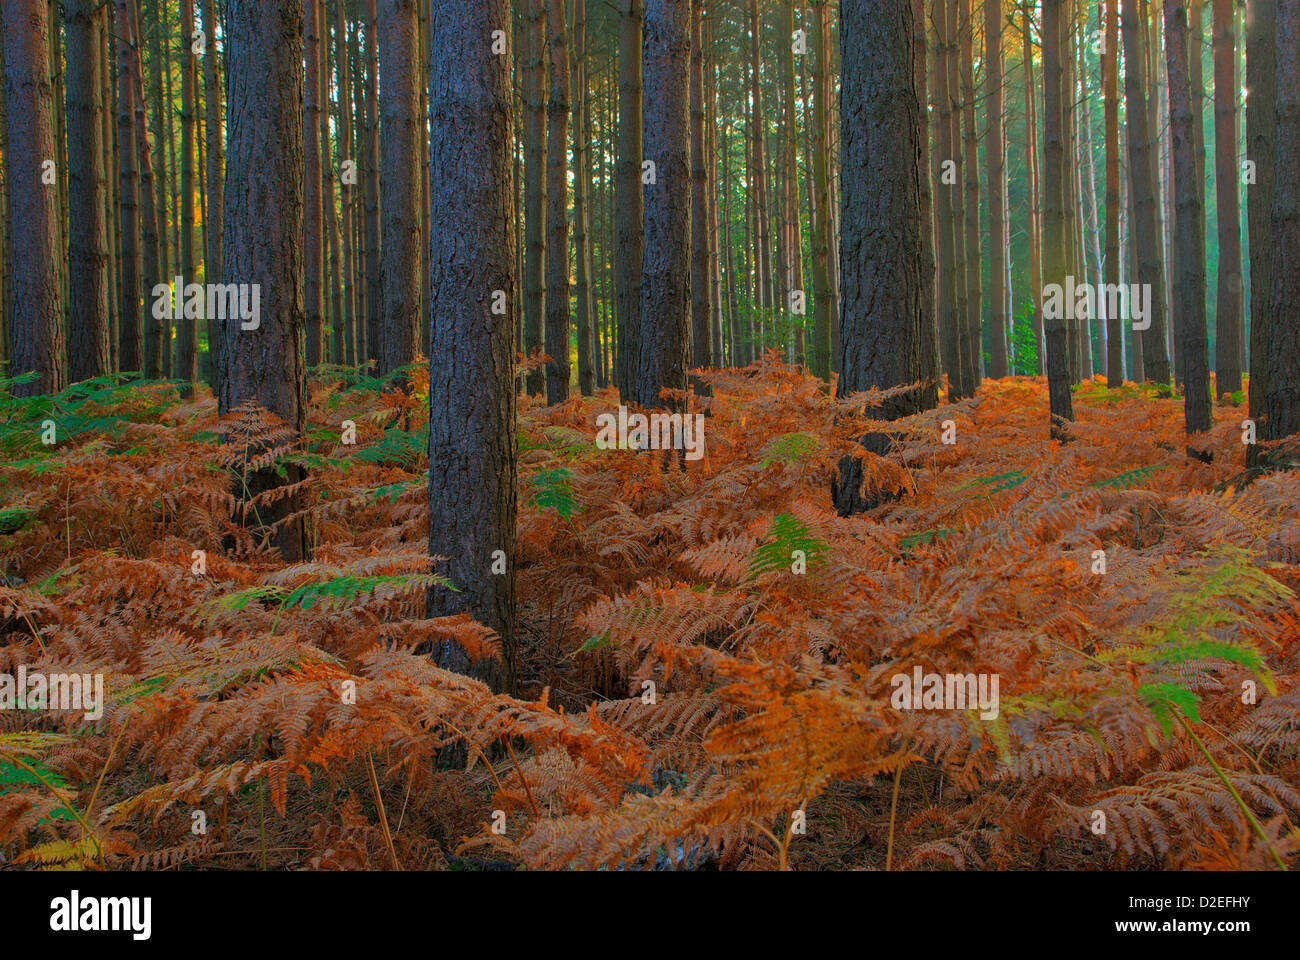 Autumn bracken in pine woods - Stock Image